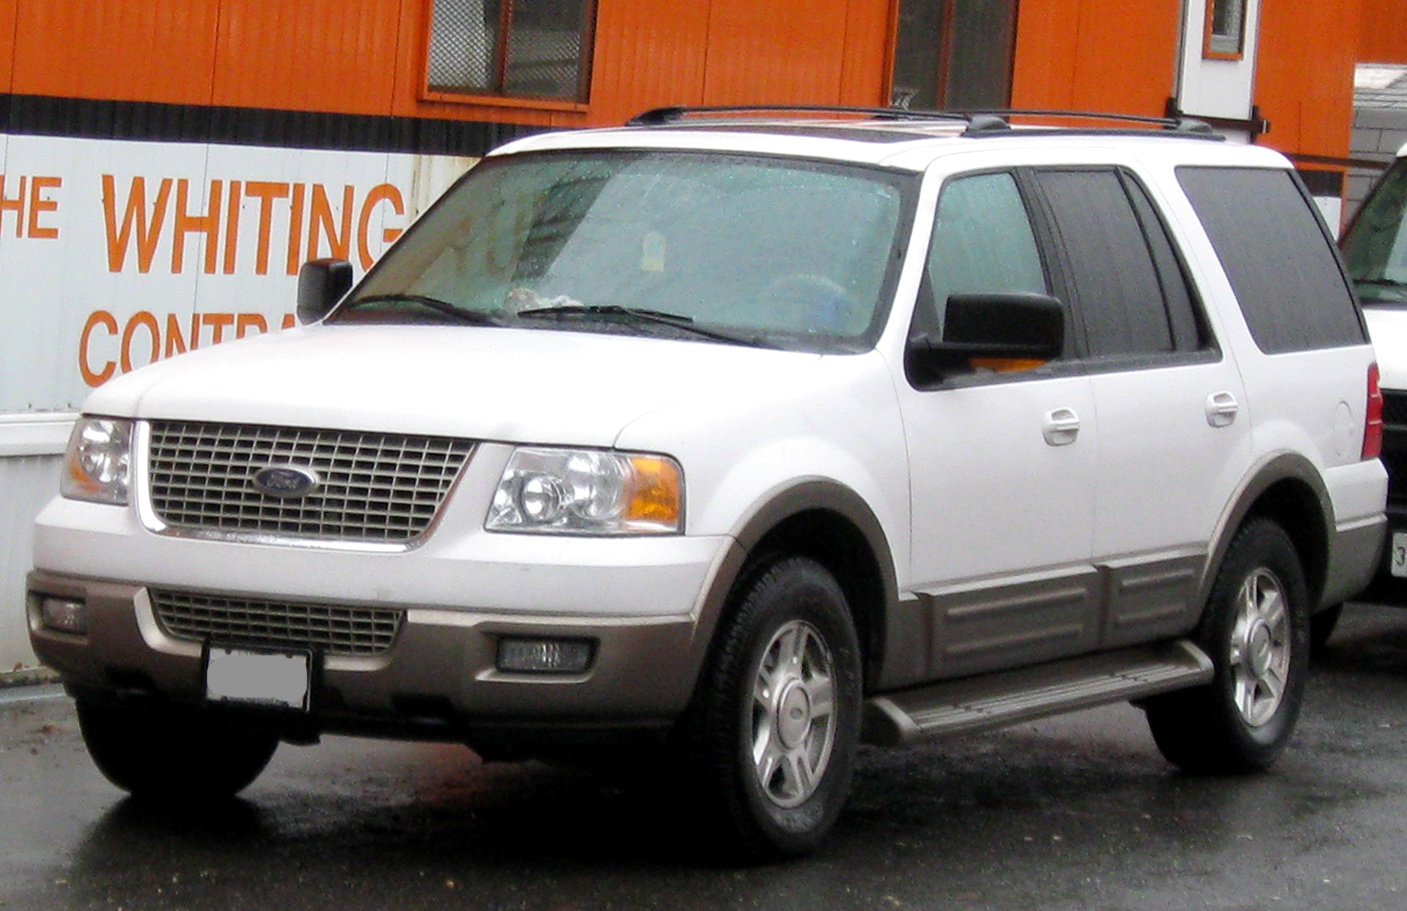 File Ford Expedition Jpg Wikimedia Commons - 2006 expedition